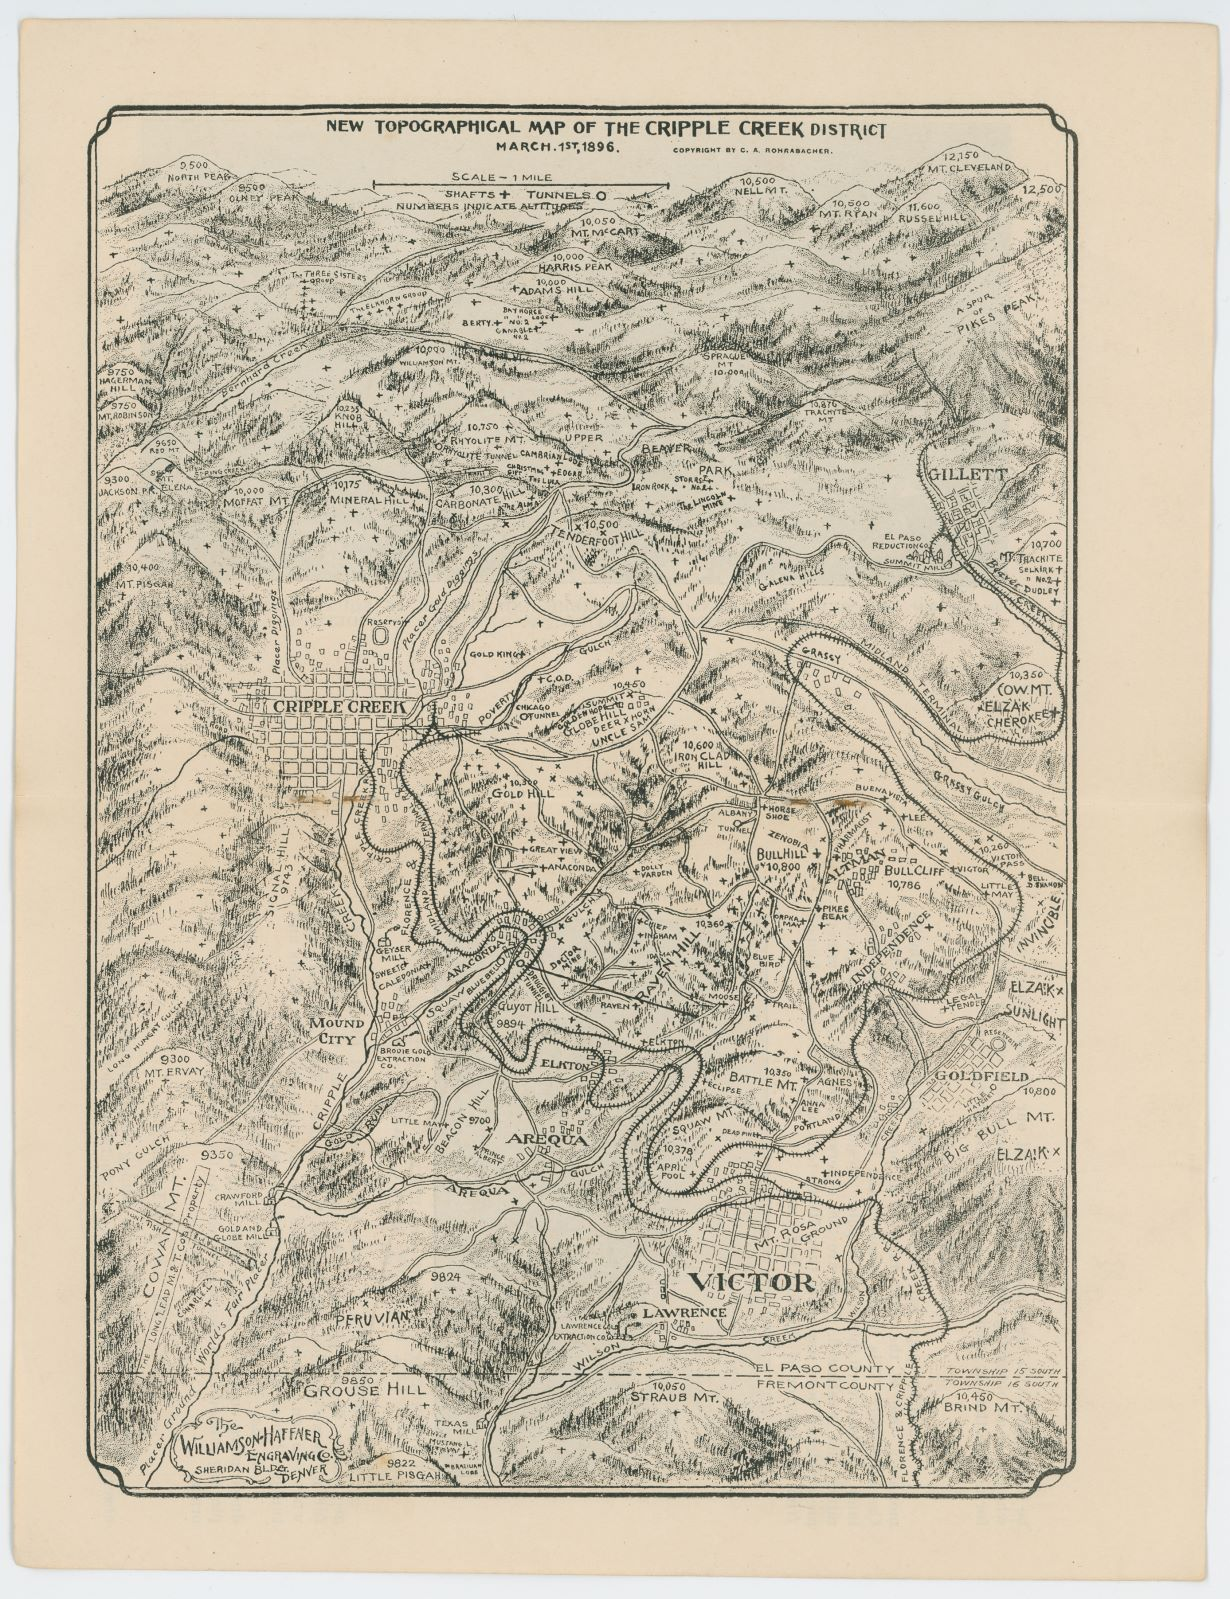 Newest Topographical Map of the Cripple Creek District, Dated March 1, 1896